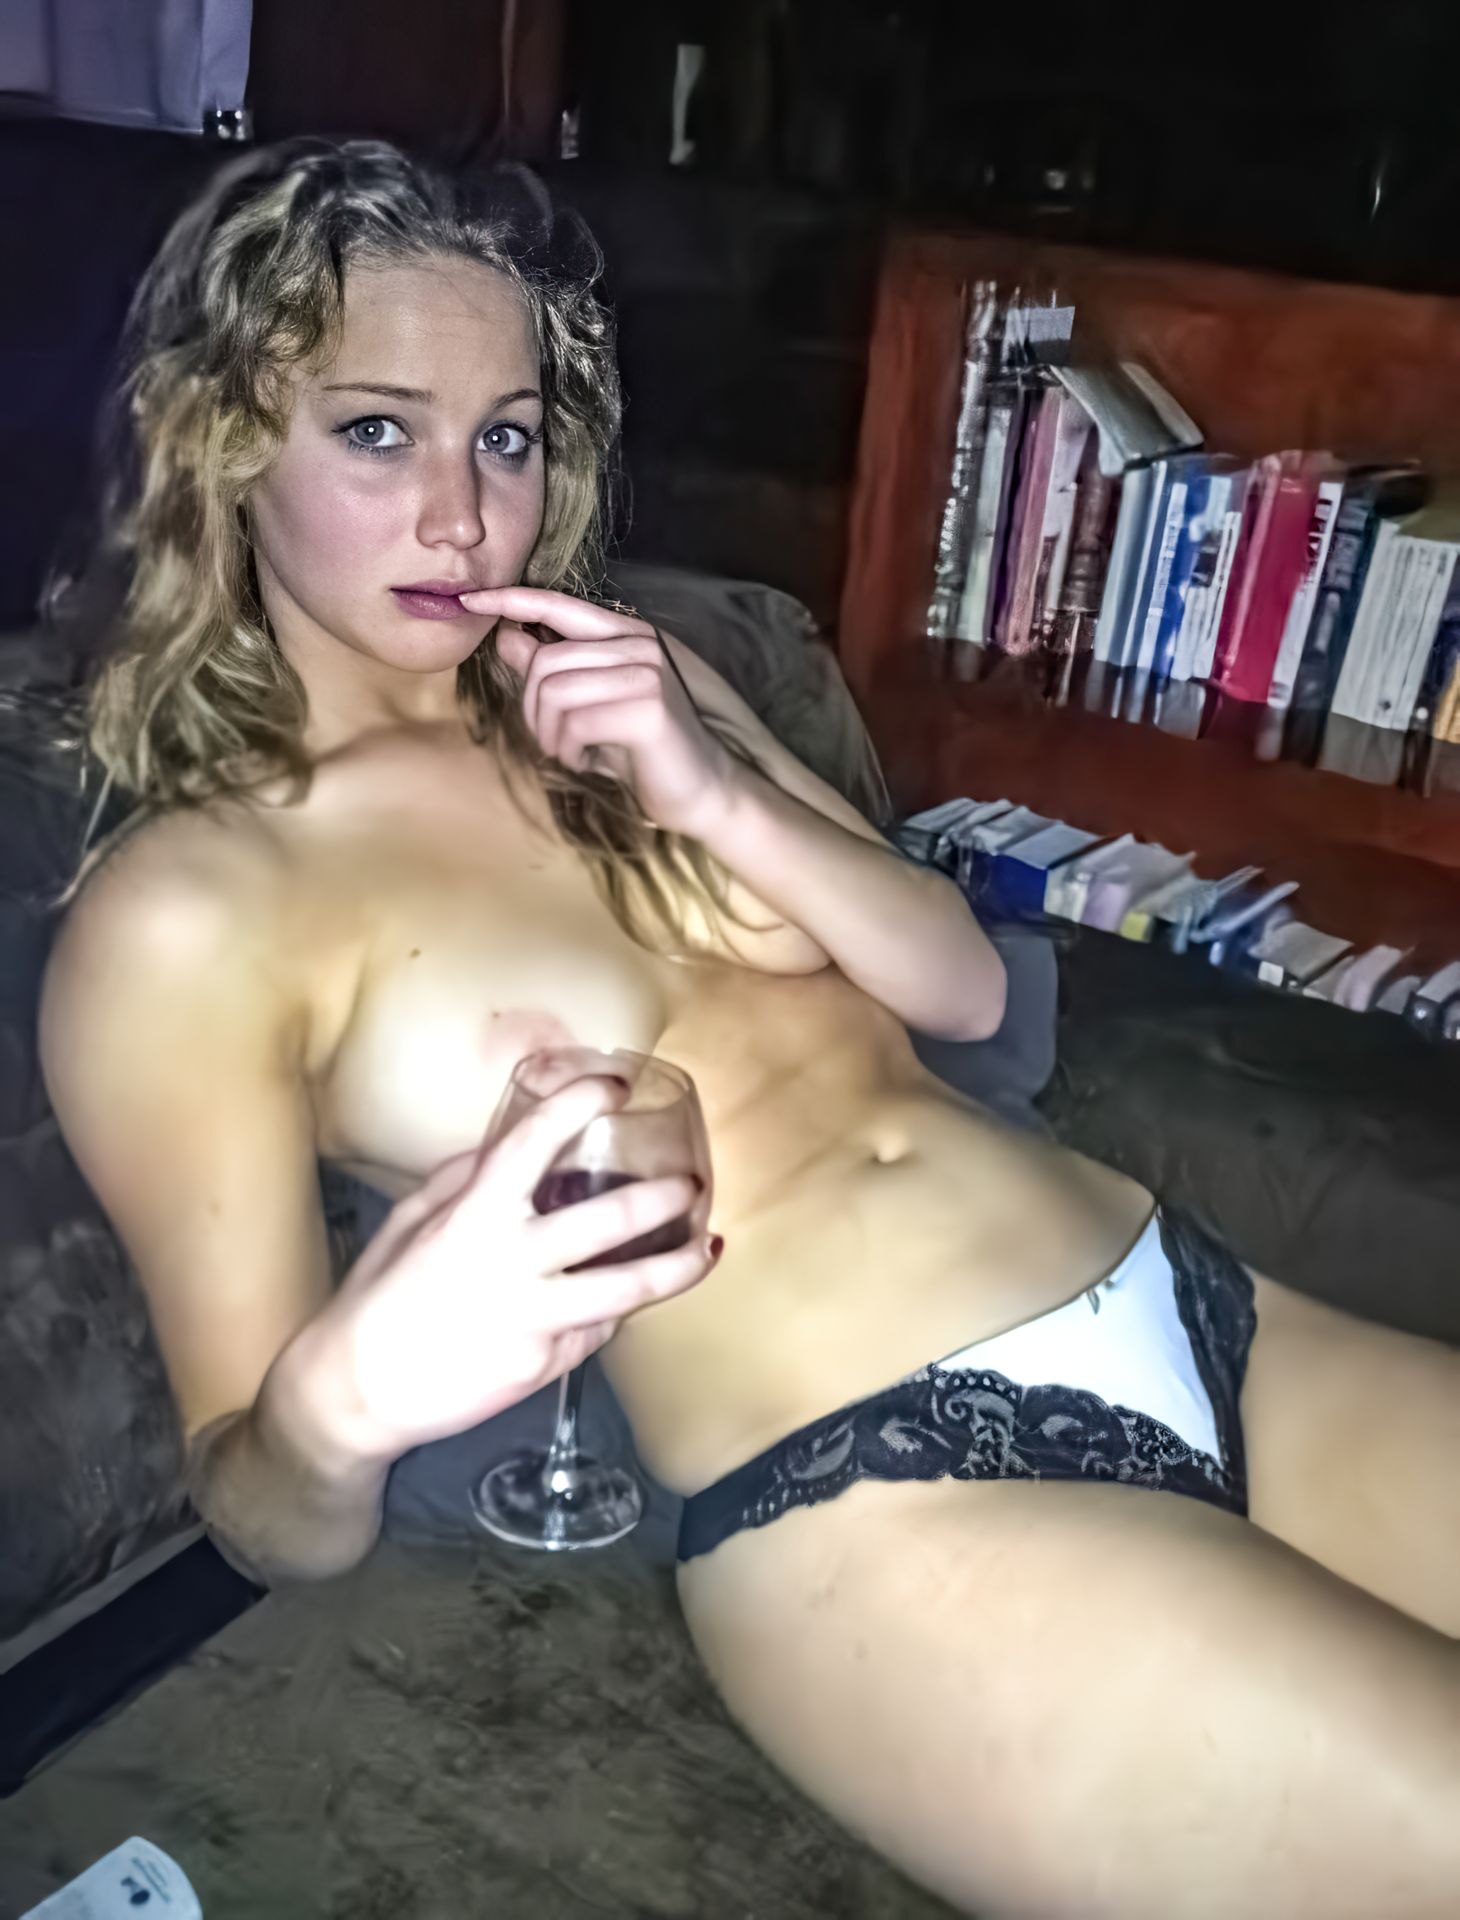 Fappening lawrence The Fappening: